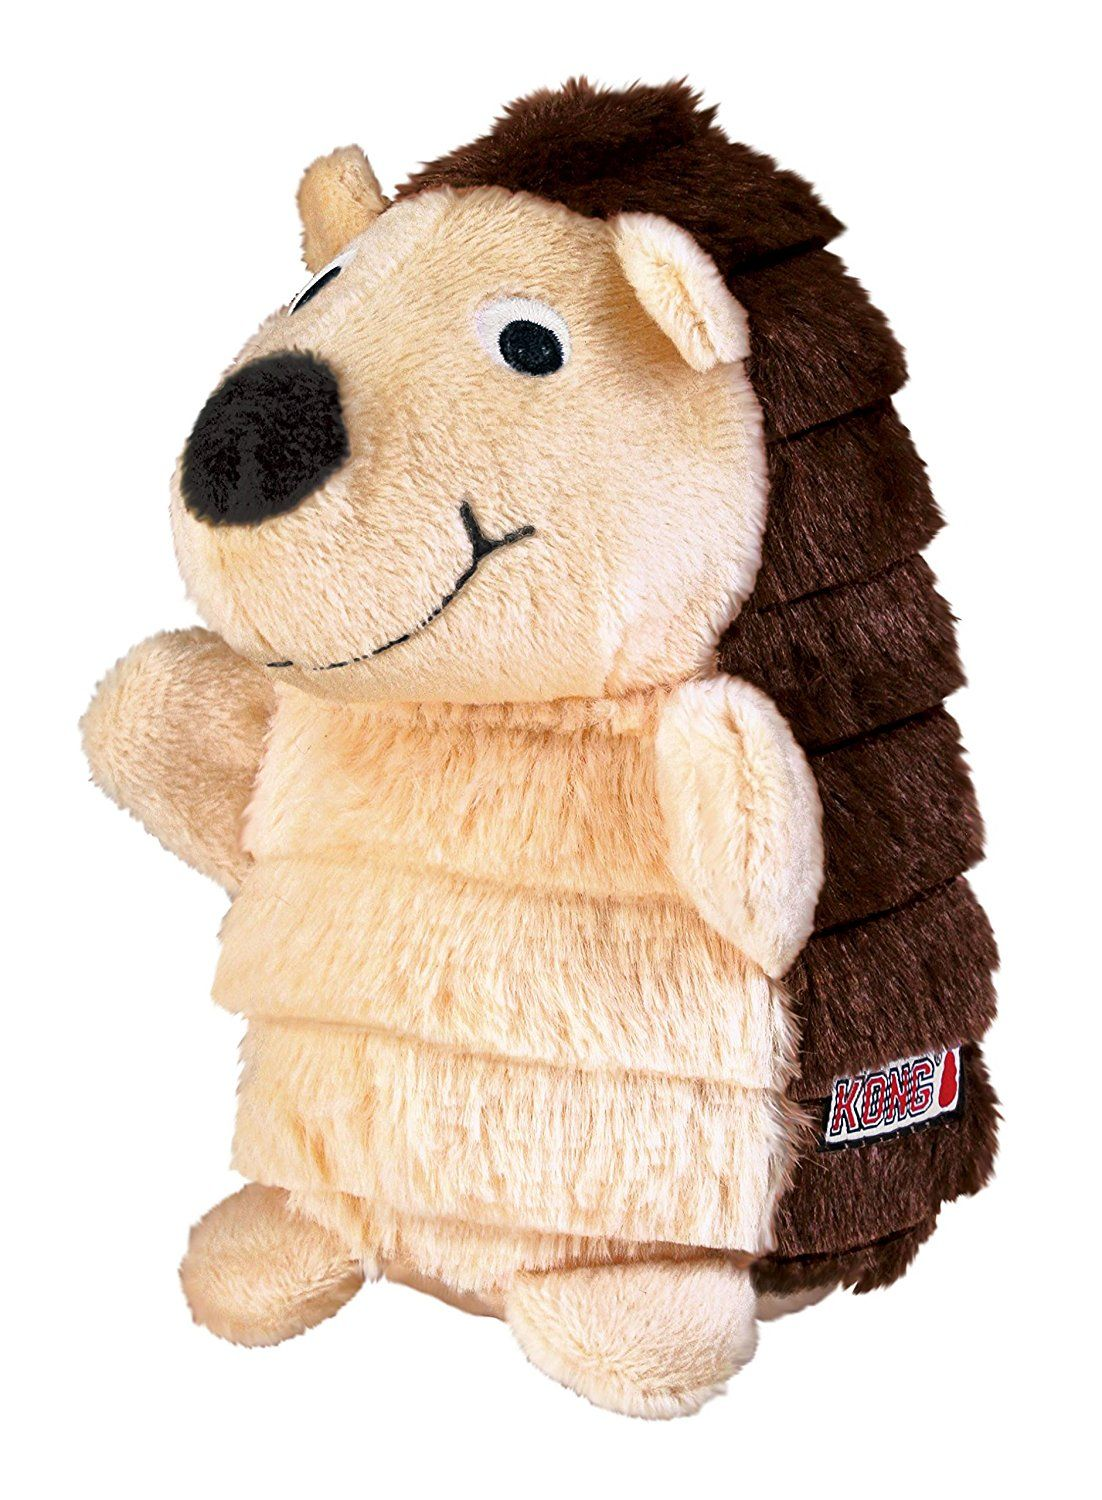 Kong Layerz Hedgehog Toy Read More At The Image Link This Is